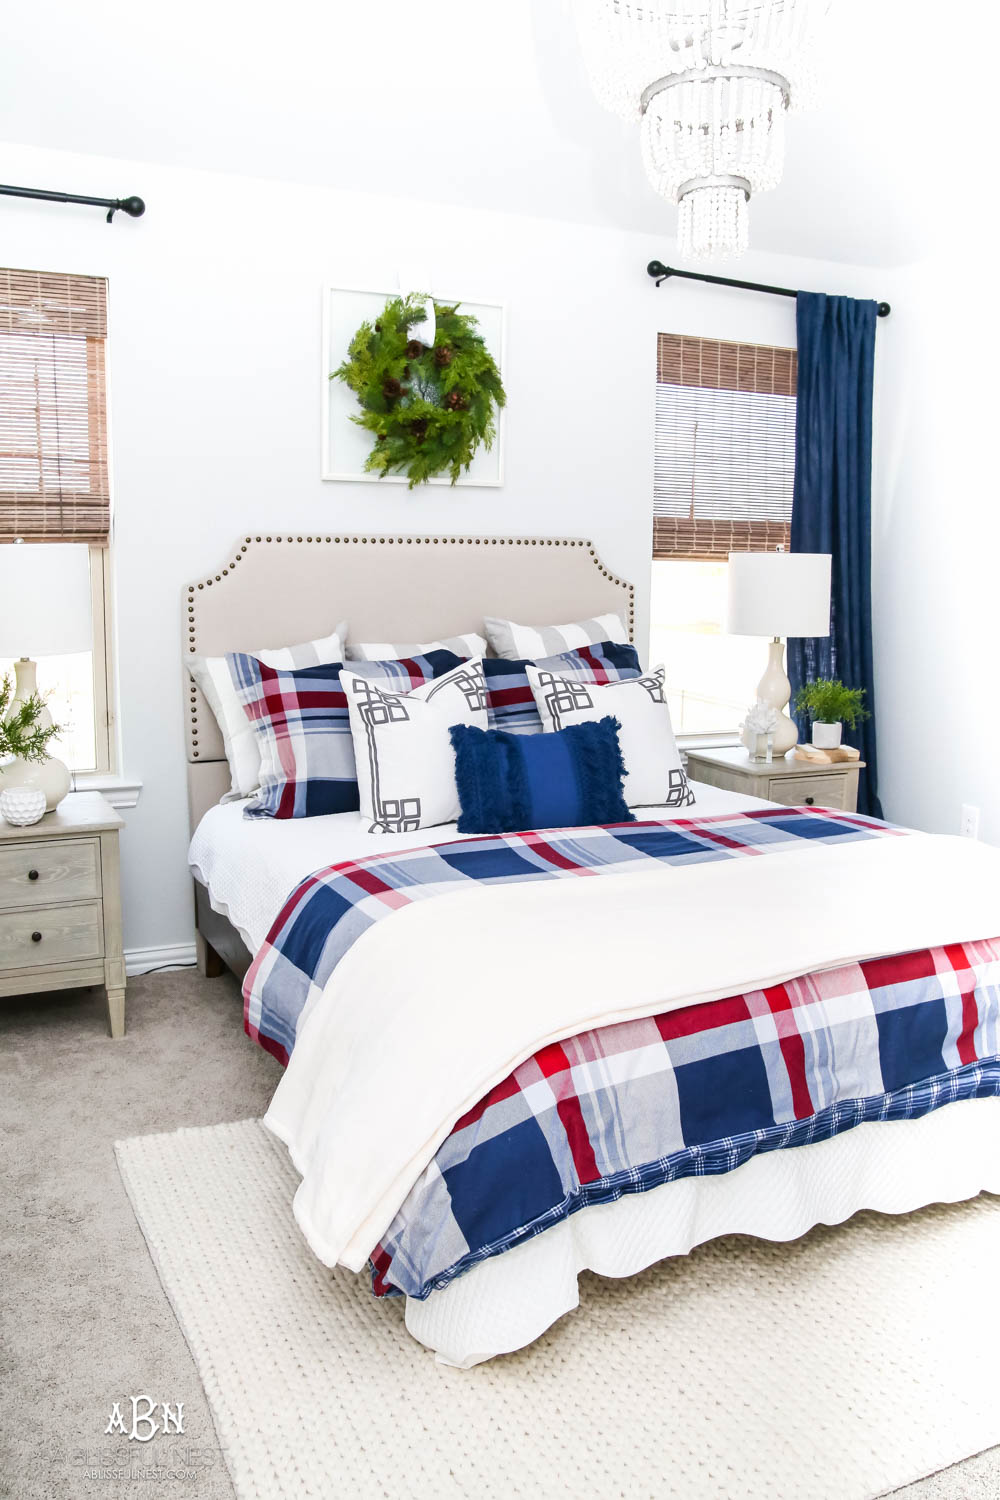 Jazz up your guest bedroom with beautiful plaid bedding and cozy essentials from Kohl's! #ad #WinterBedding #KohlsFinds #guestbedroom #plaid